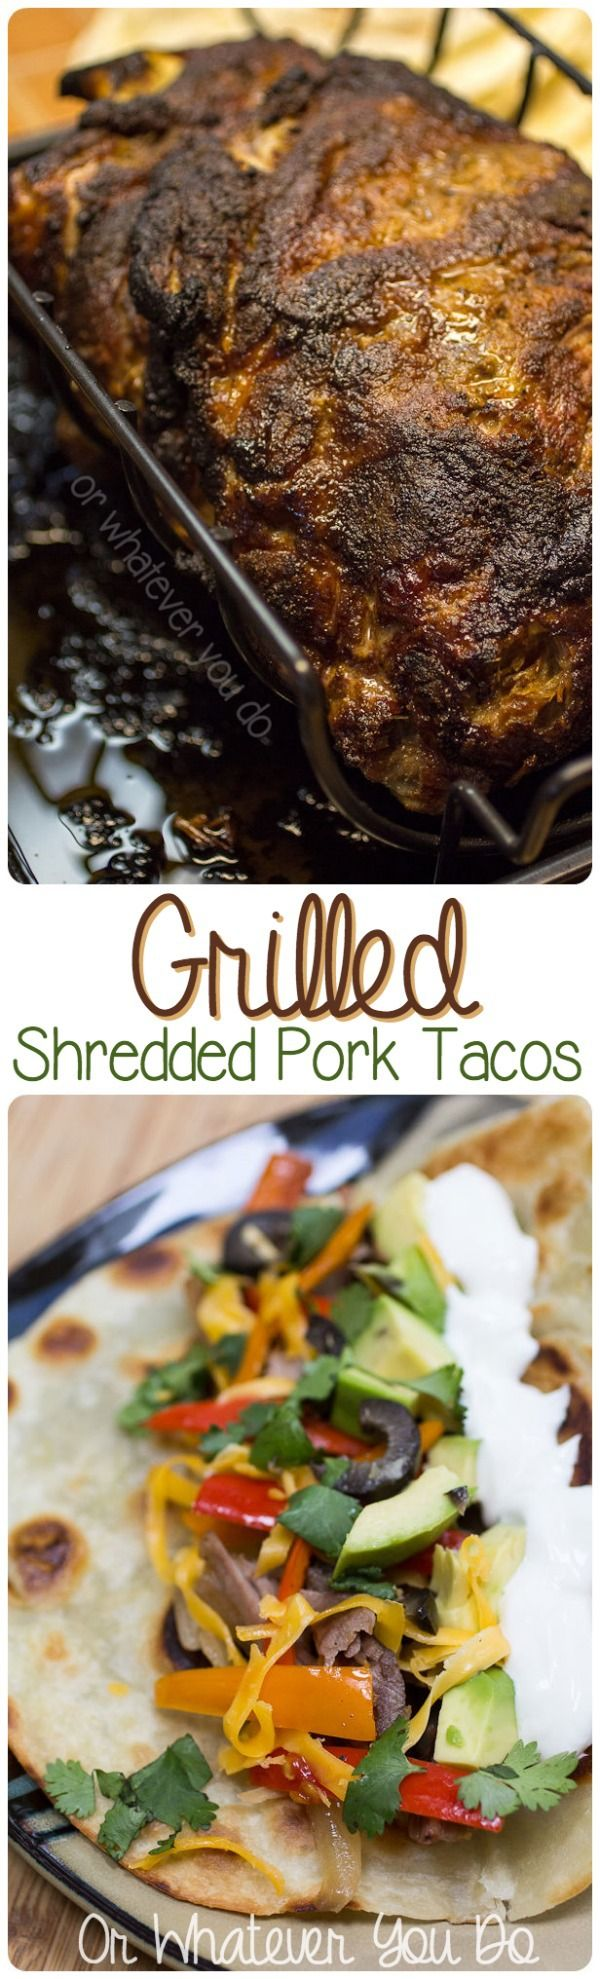 Perfectly seasoned grilled shredded pork shoulder for tacos. Juicy, delicious, and worth the time!